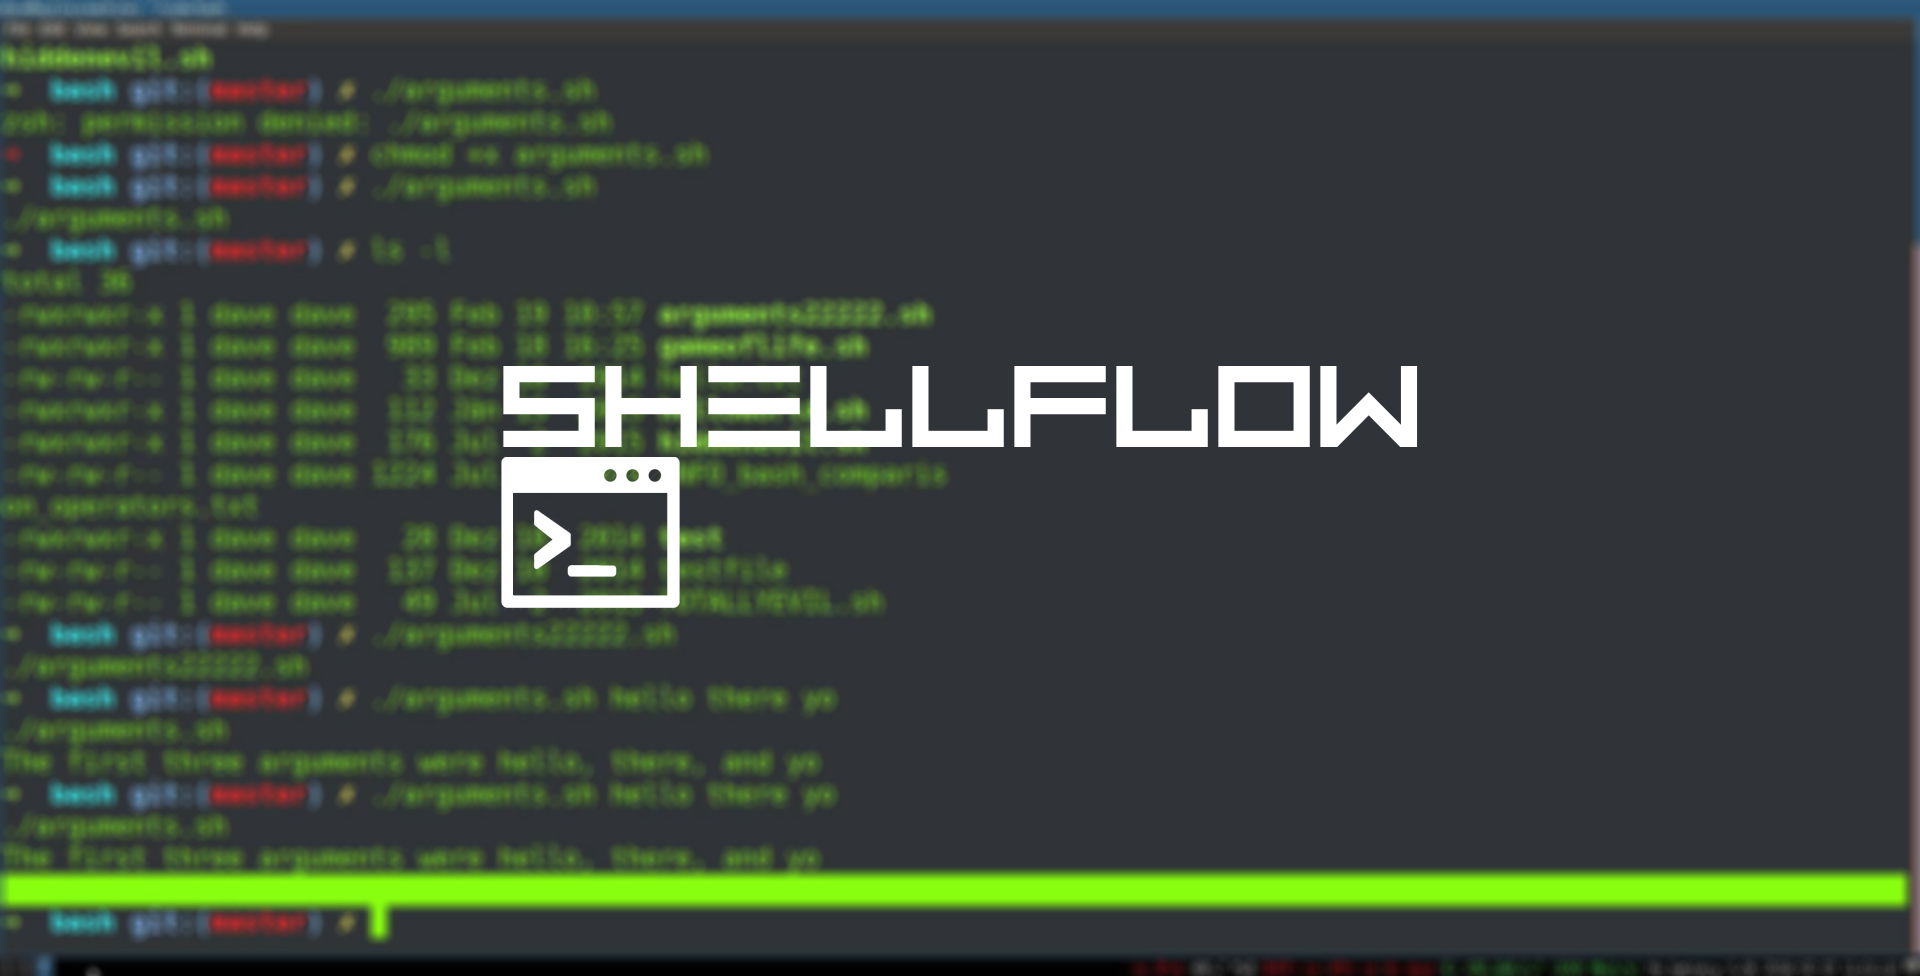 ShellFl0w – Assembly: Th3_Rubb!t_Jump